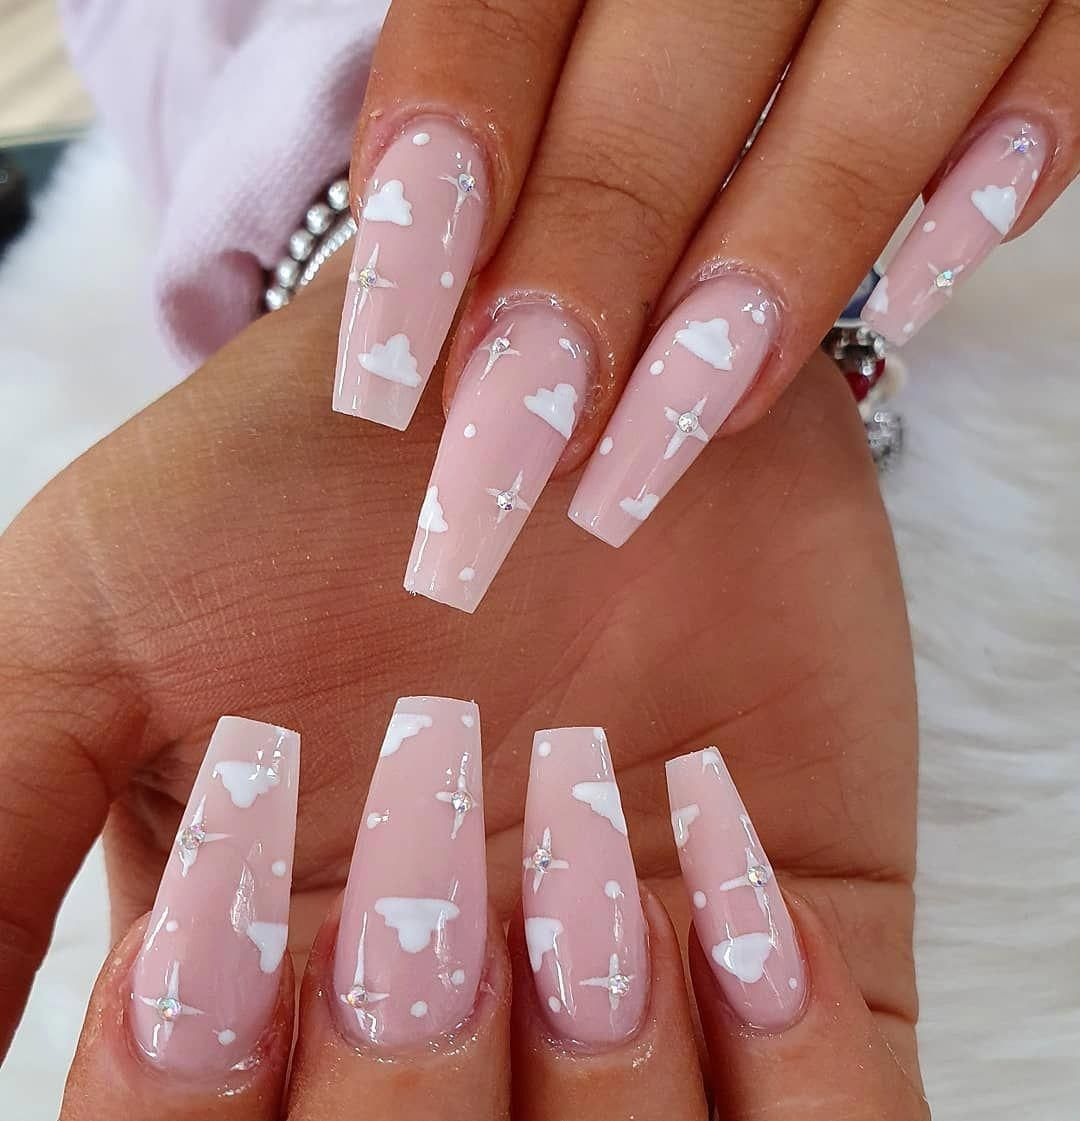 What You Need To Know About Acrylic Nails In 2020 Swag Nails Pink Acrylic Nails Best Acrylic Nails